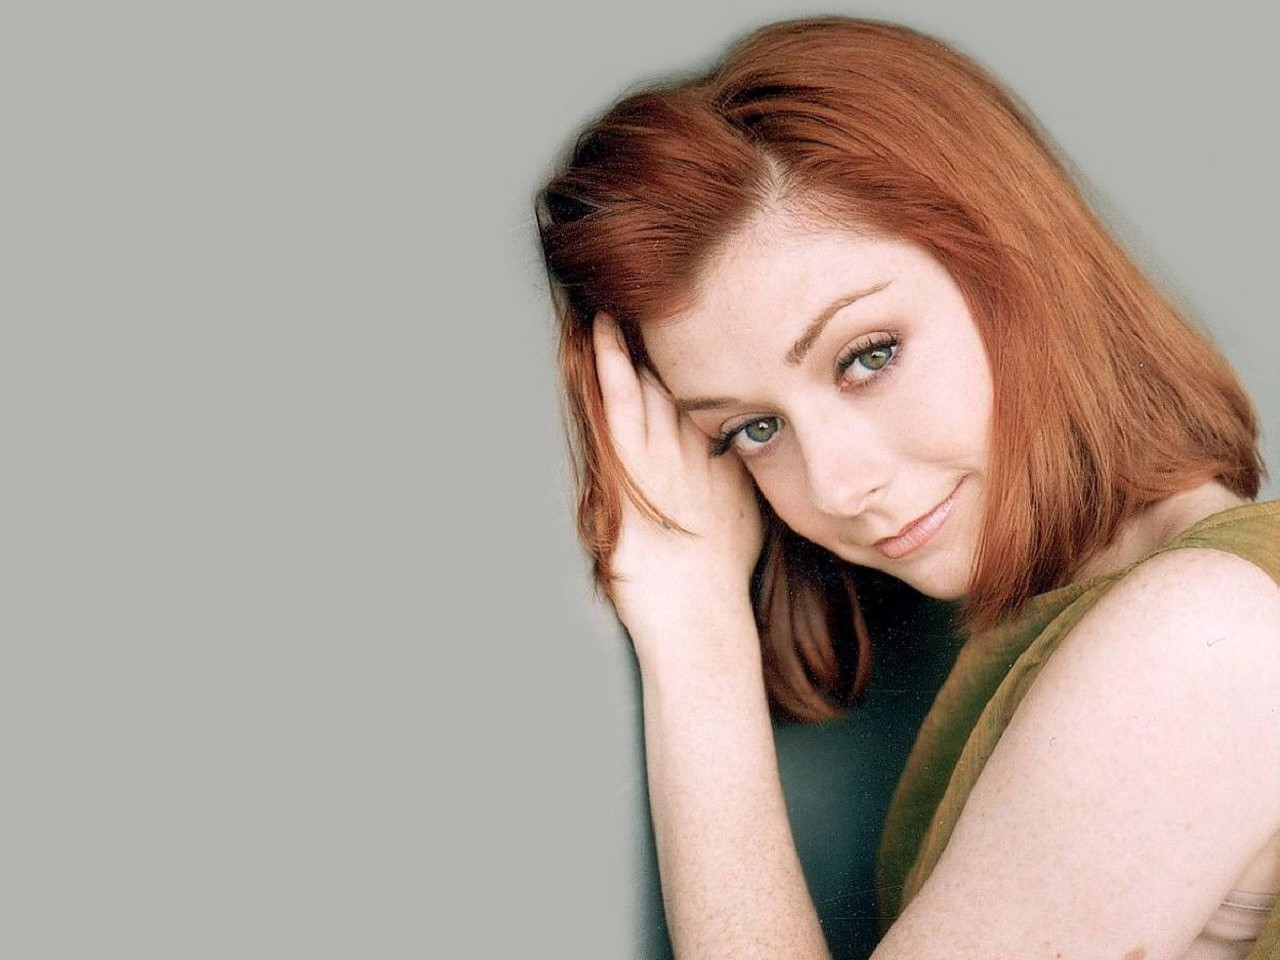 Wallpaper di Alyson Hannigan, la rossa star di Buffy